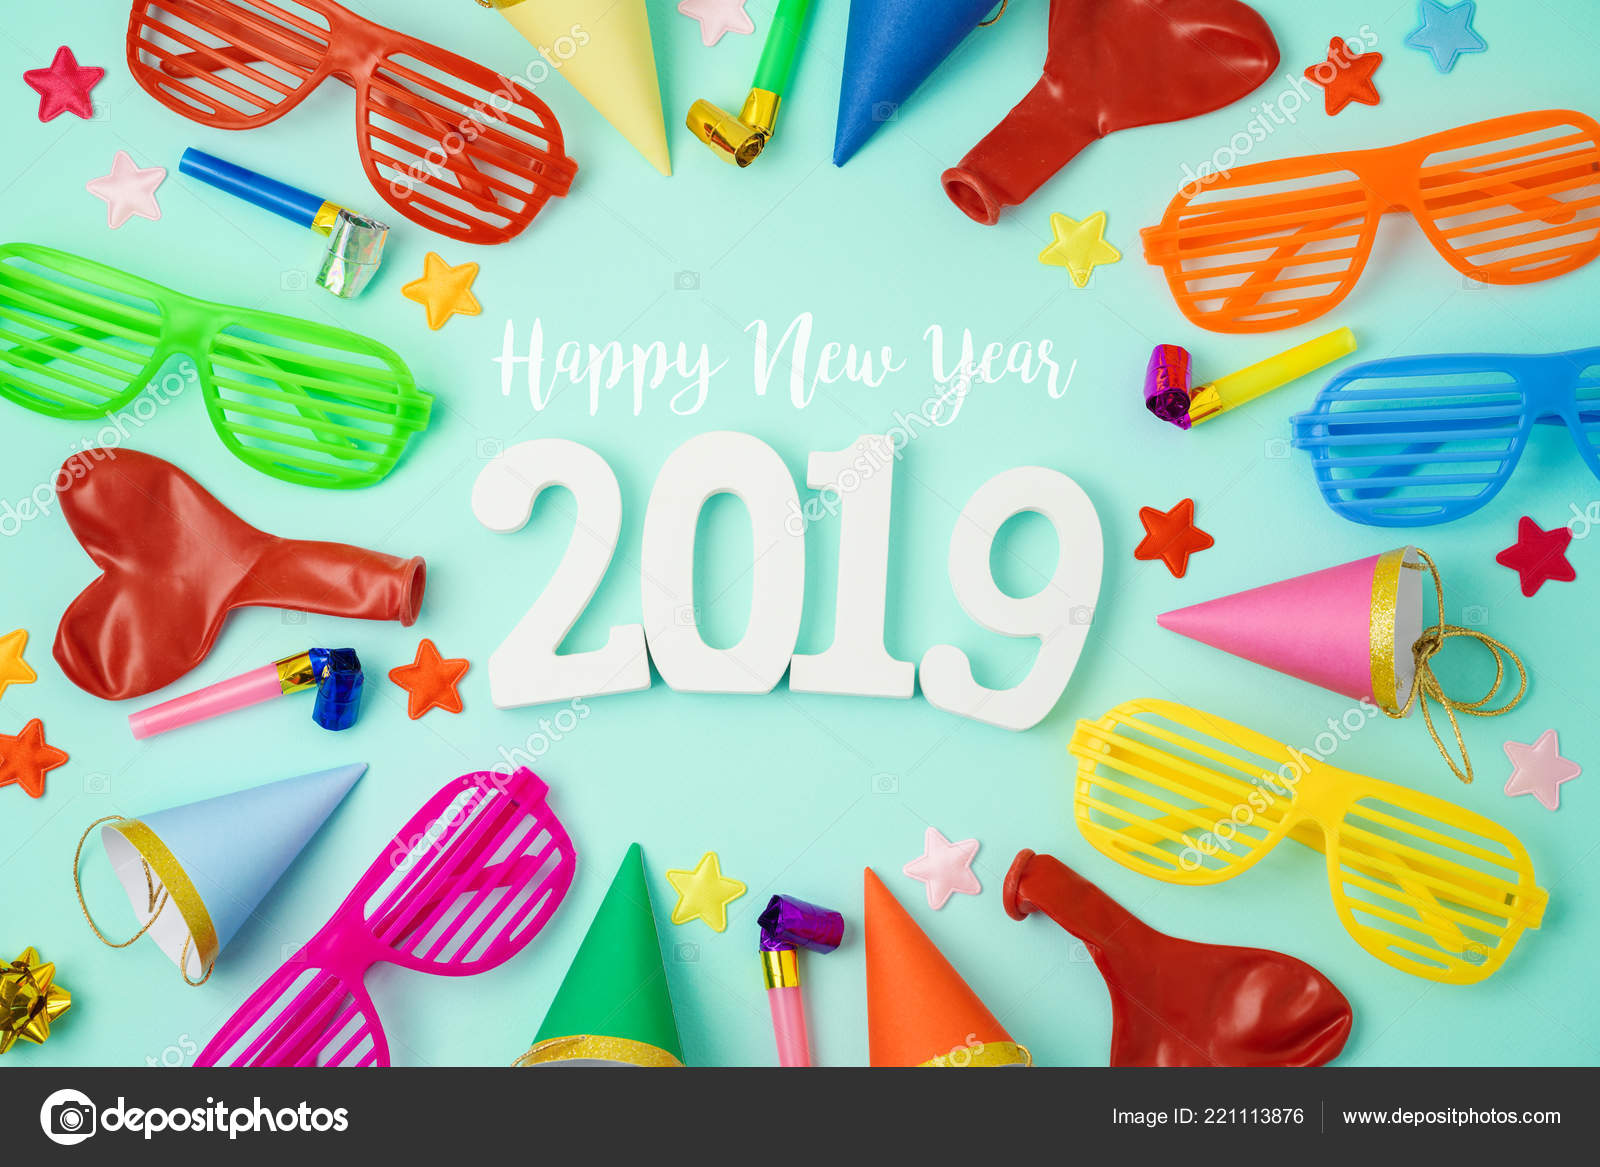 New Year 2019 Party Celebration Background Colorful Balloons Party